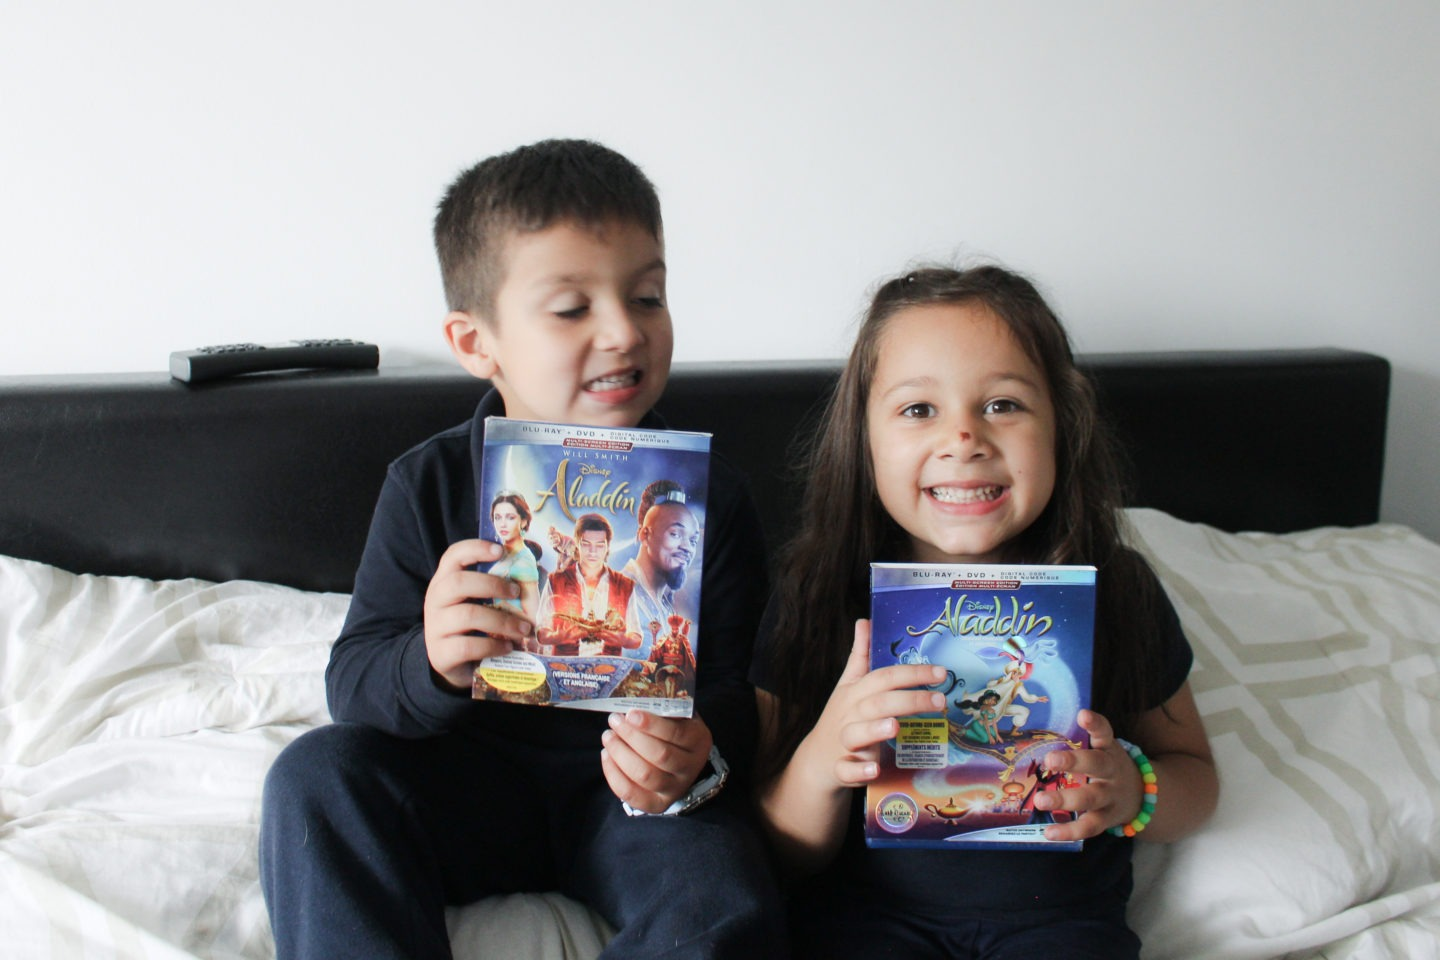 Aladdin: Old vs New + Giveaway